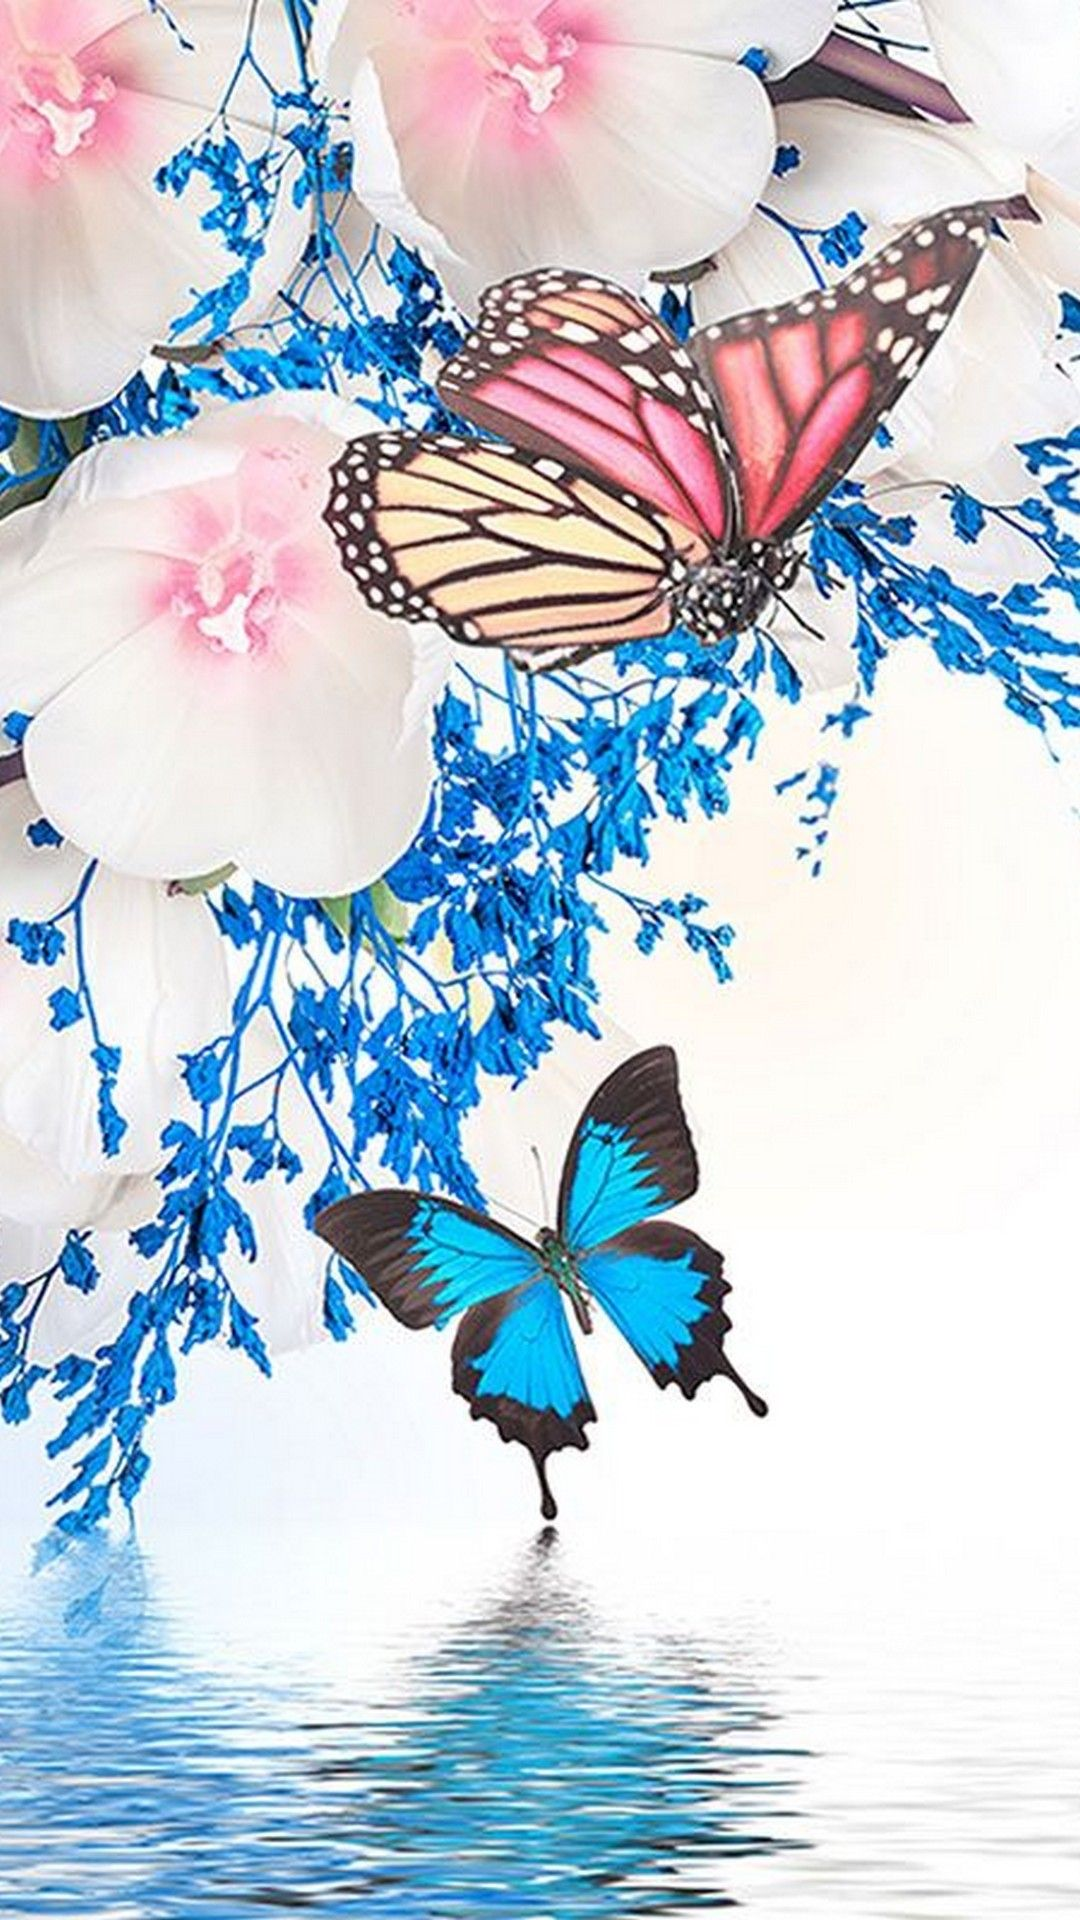 Butterfly HD Android Mobile Wallpapers - Wallpaper Cave